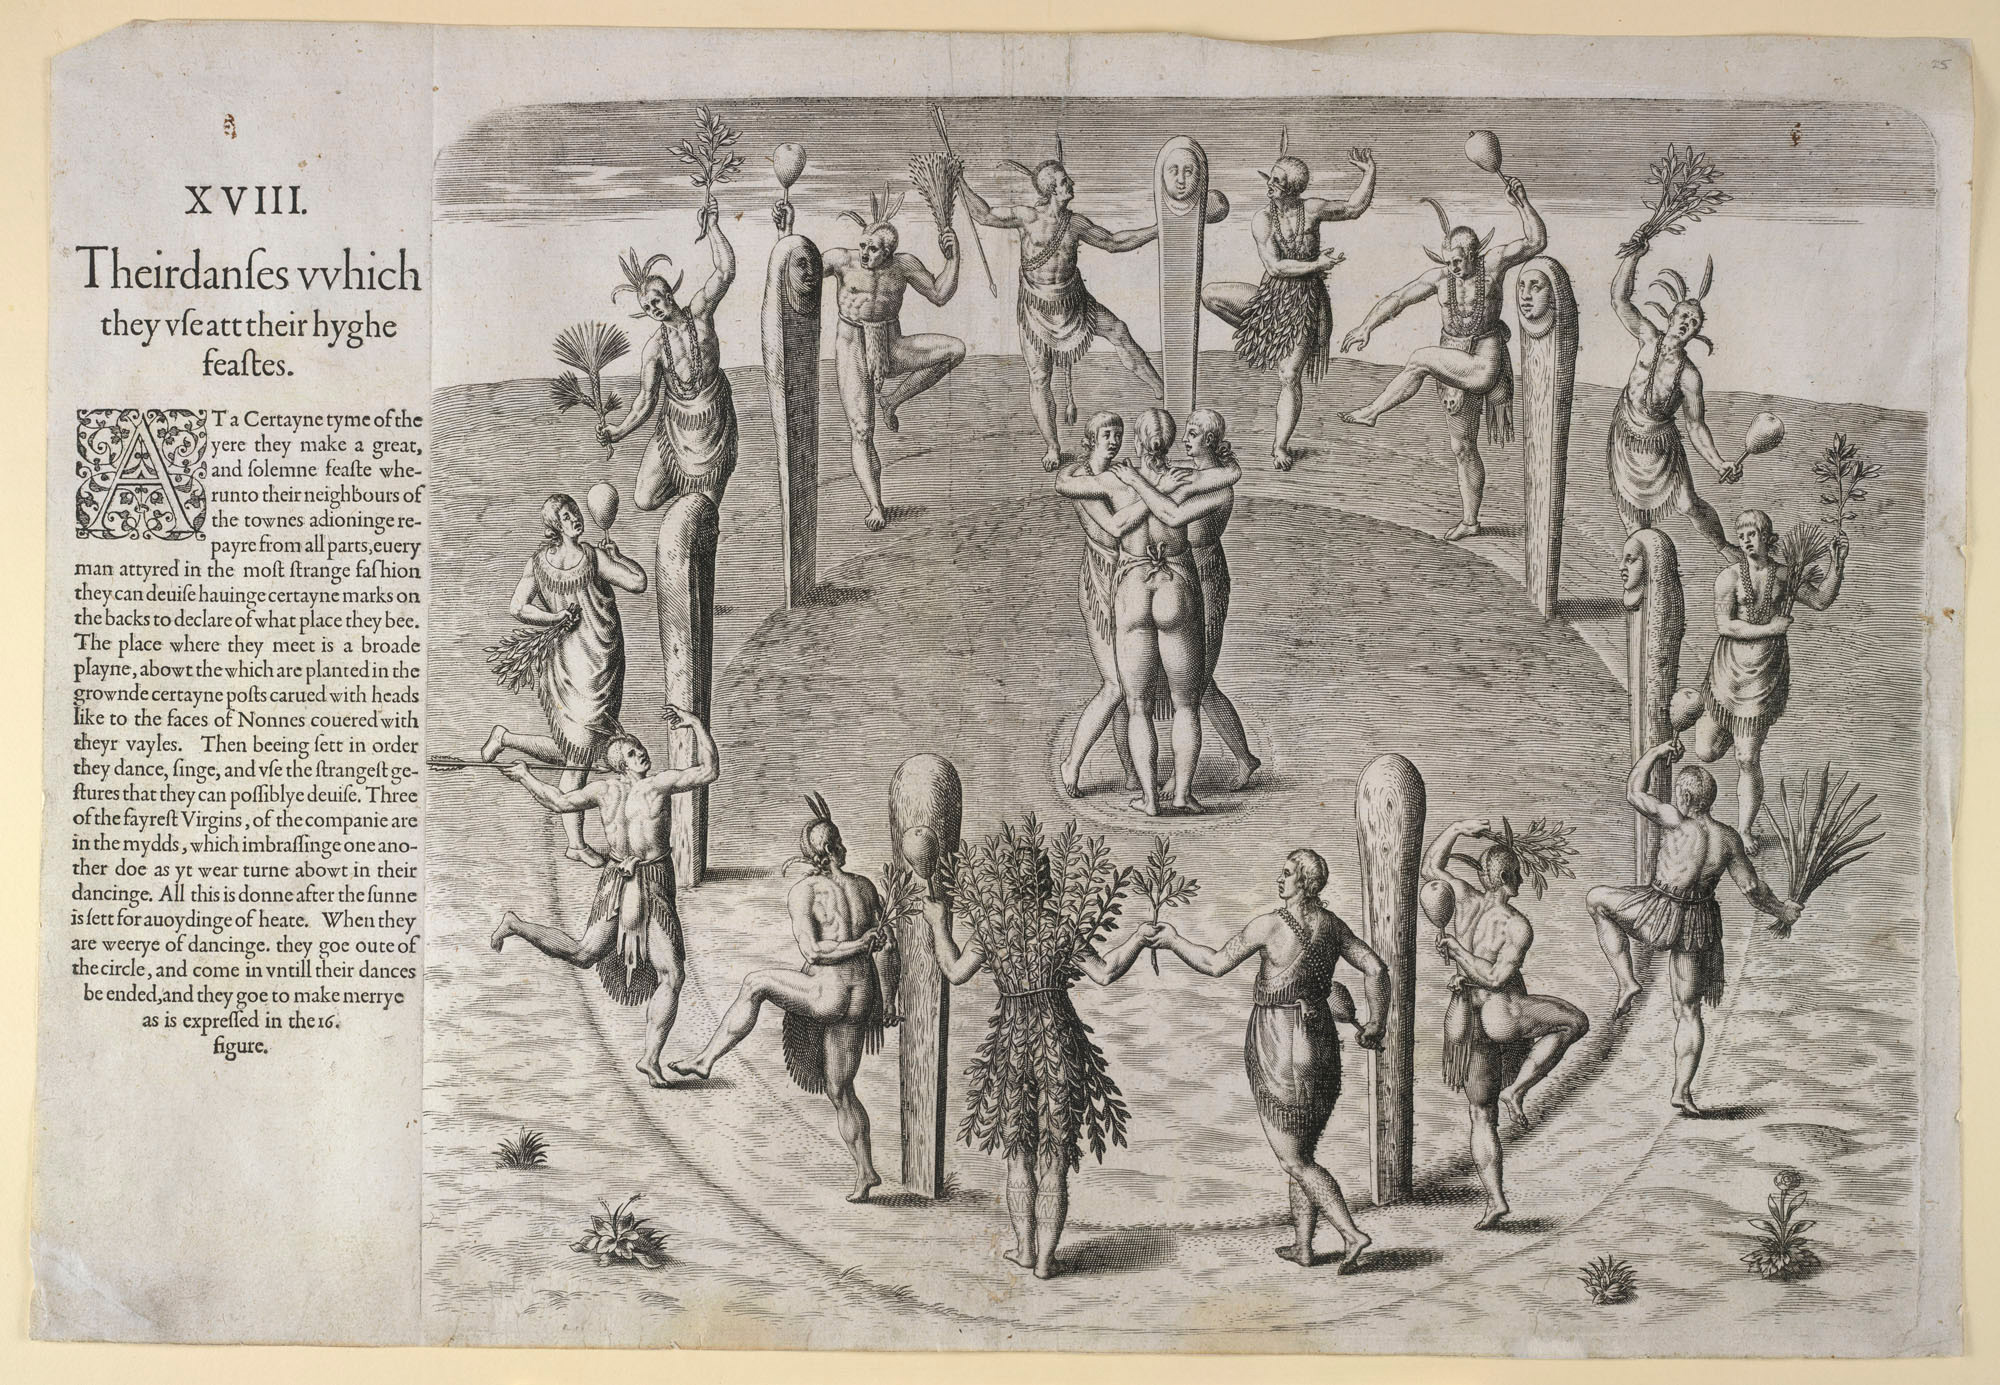 Engravings of Native Americans and Picts in Harriot's A Brief and True Report, 1590